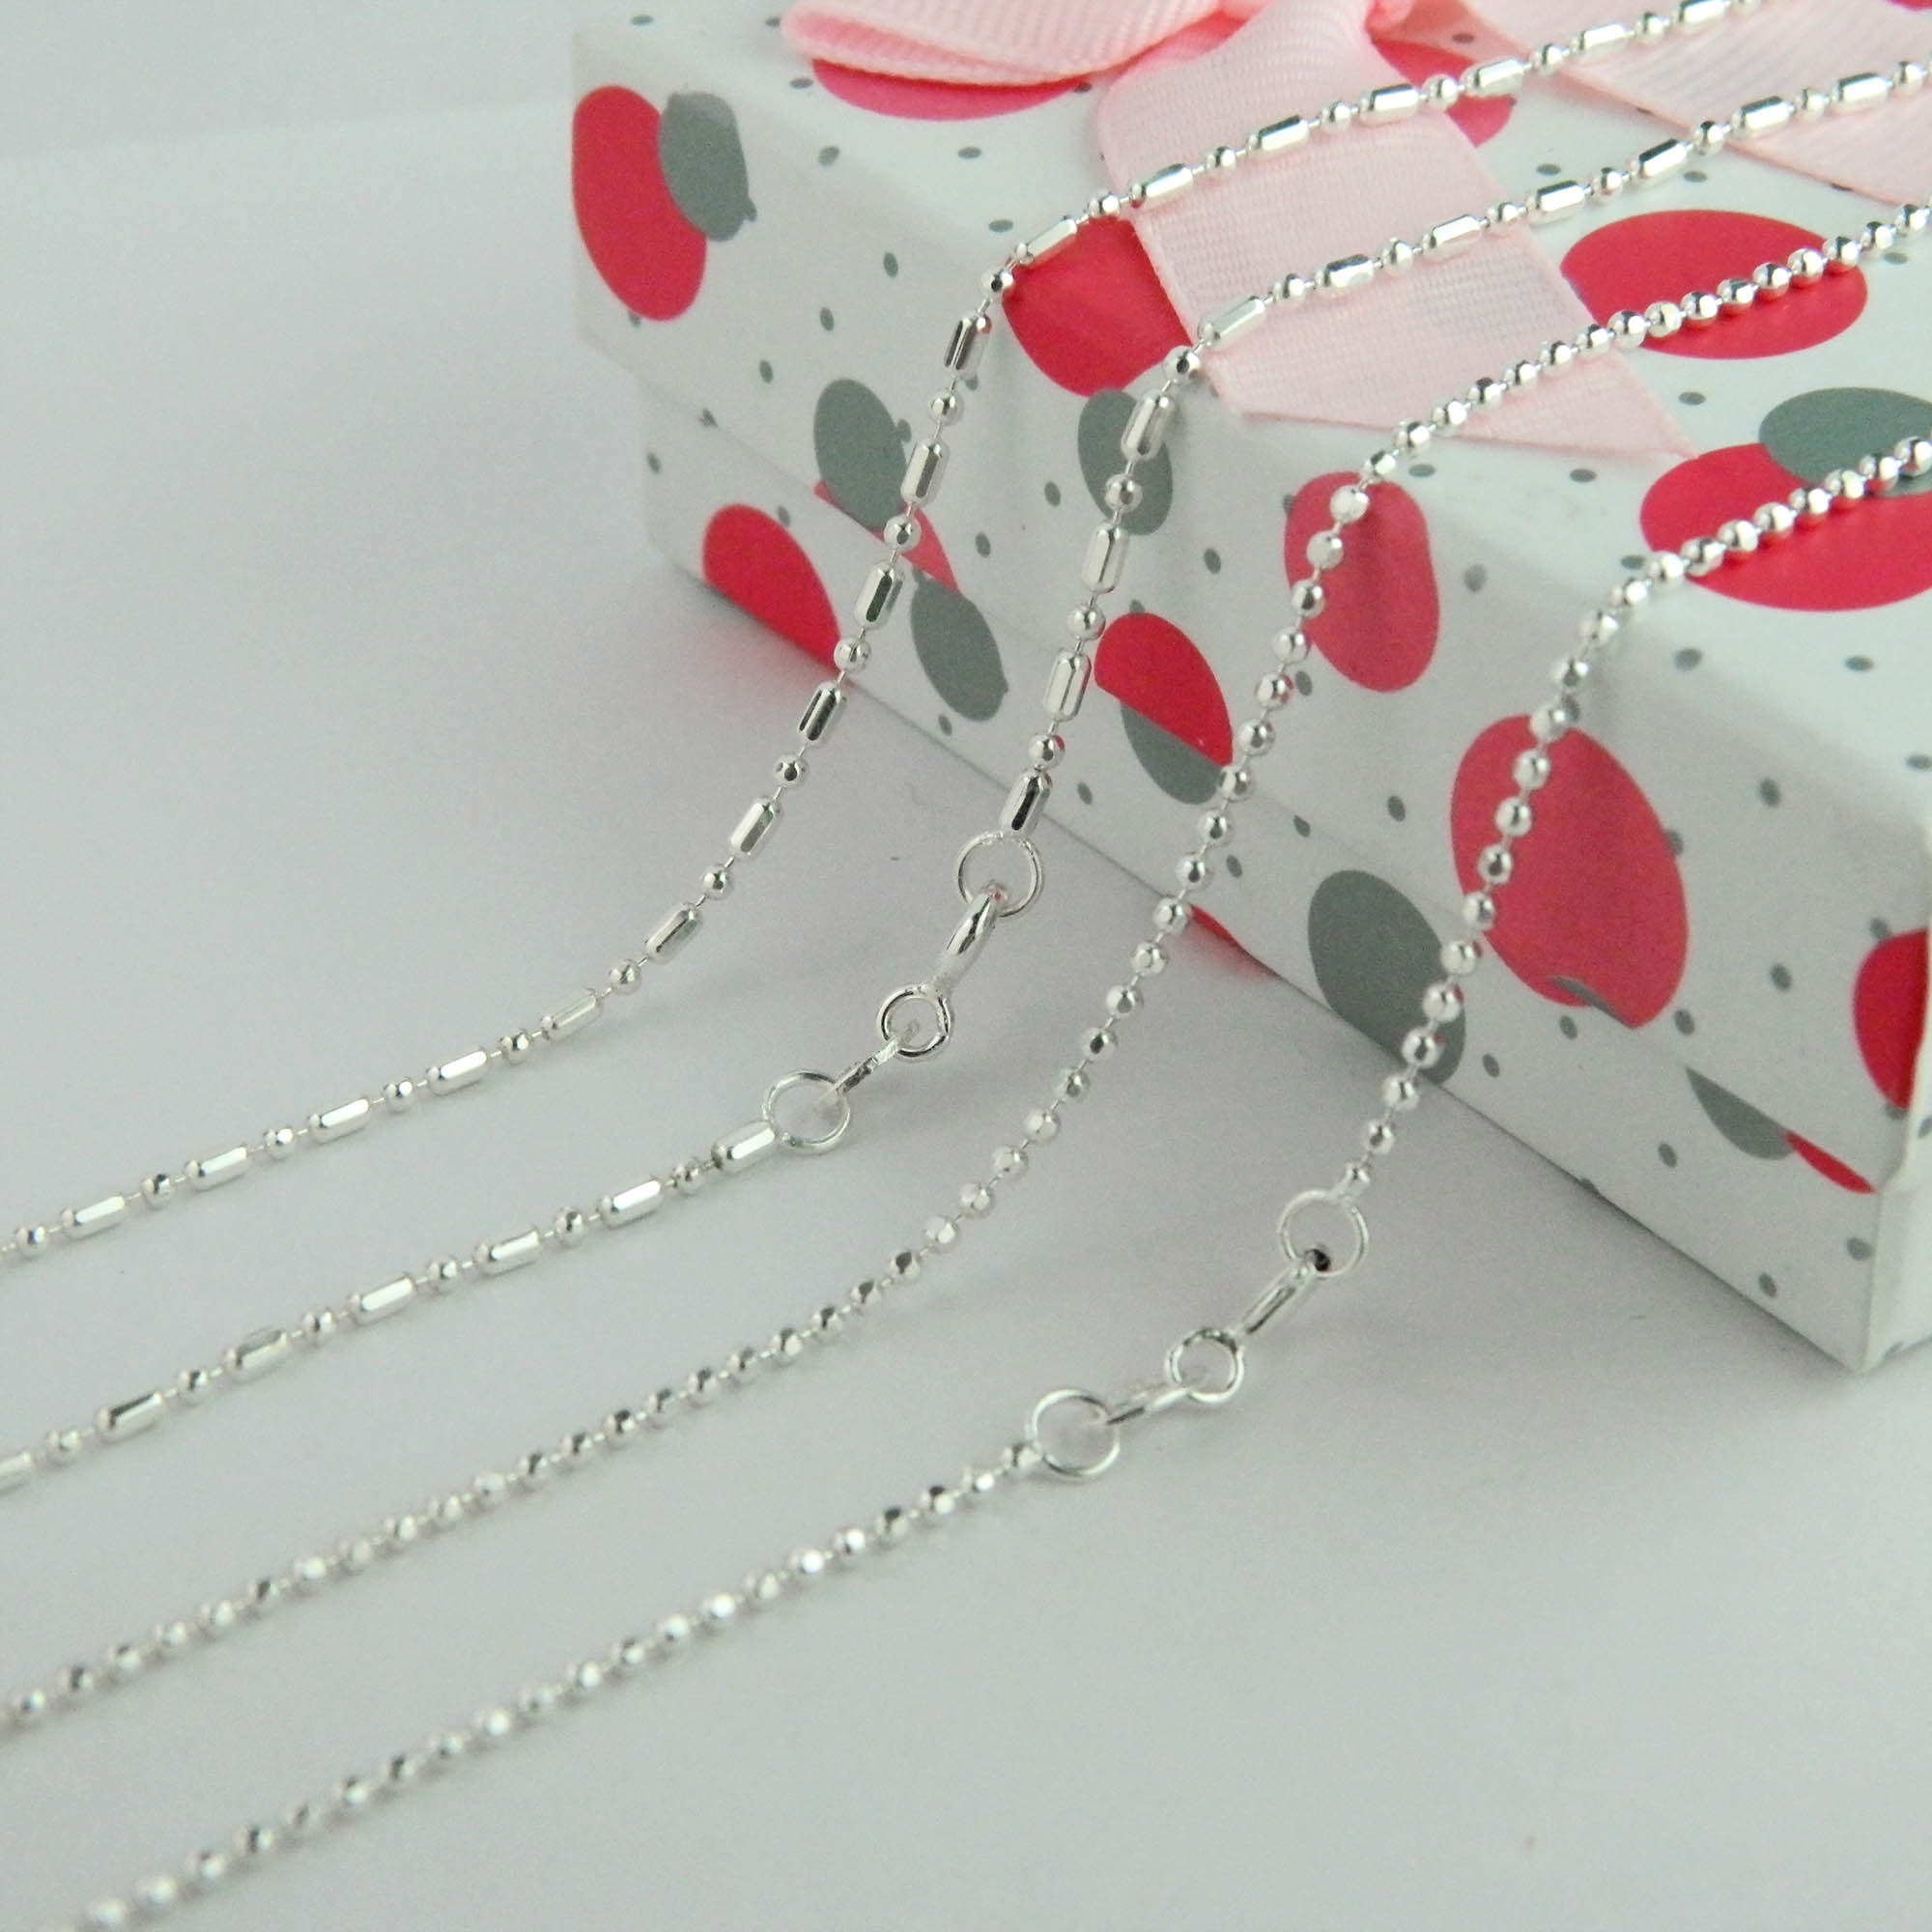 Bead Chain, 925 Silver Ball Chain, Fashion Jewelry Necklace